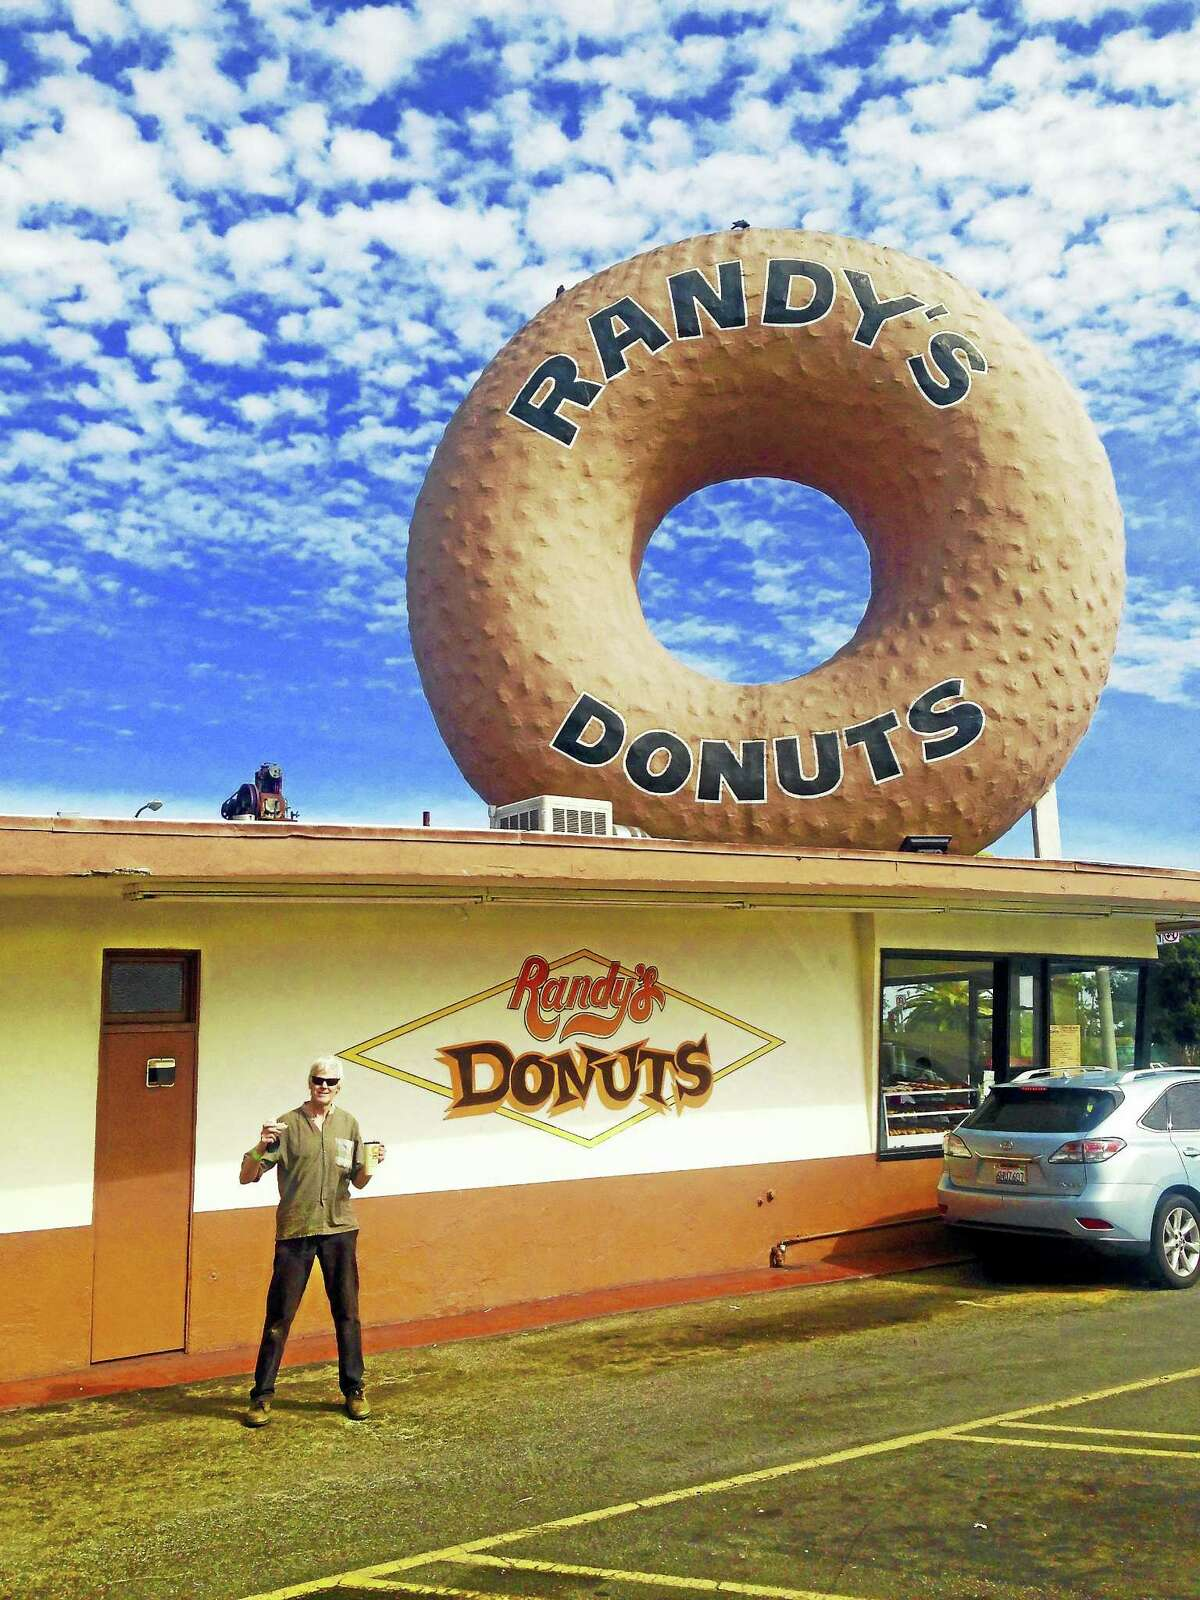 Columnist Randall (Randy) Beach journeyed 3,000 miles to sample his namesake's famed donuts in Inglewood, California. He was not disappointed. (He also visited his two daughters in L.A.)